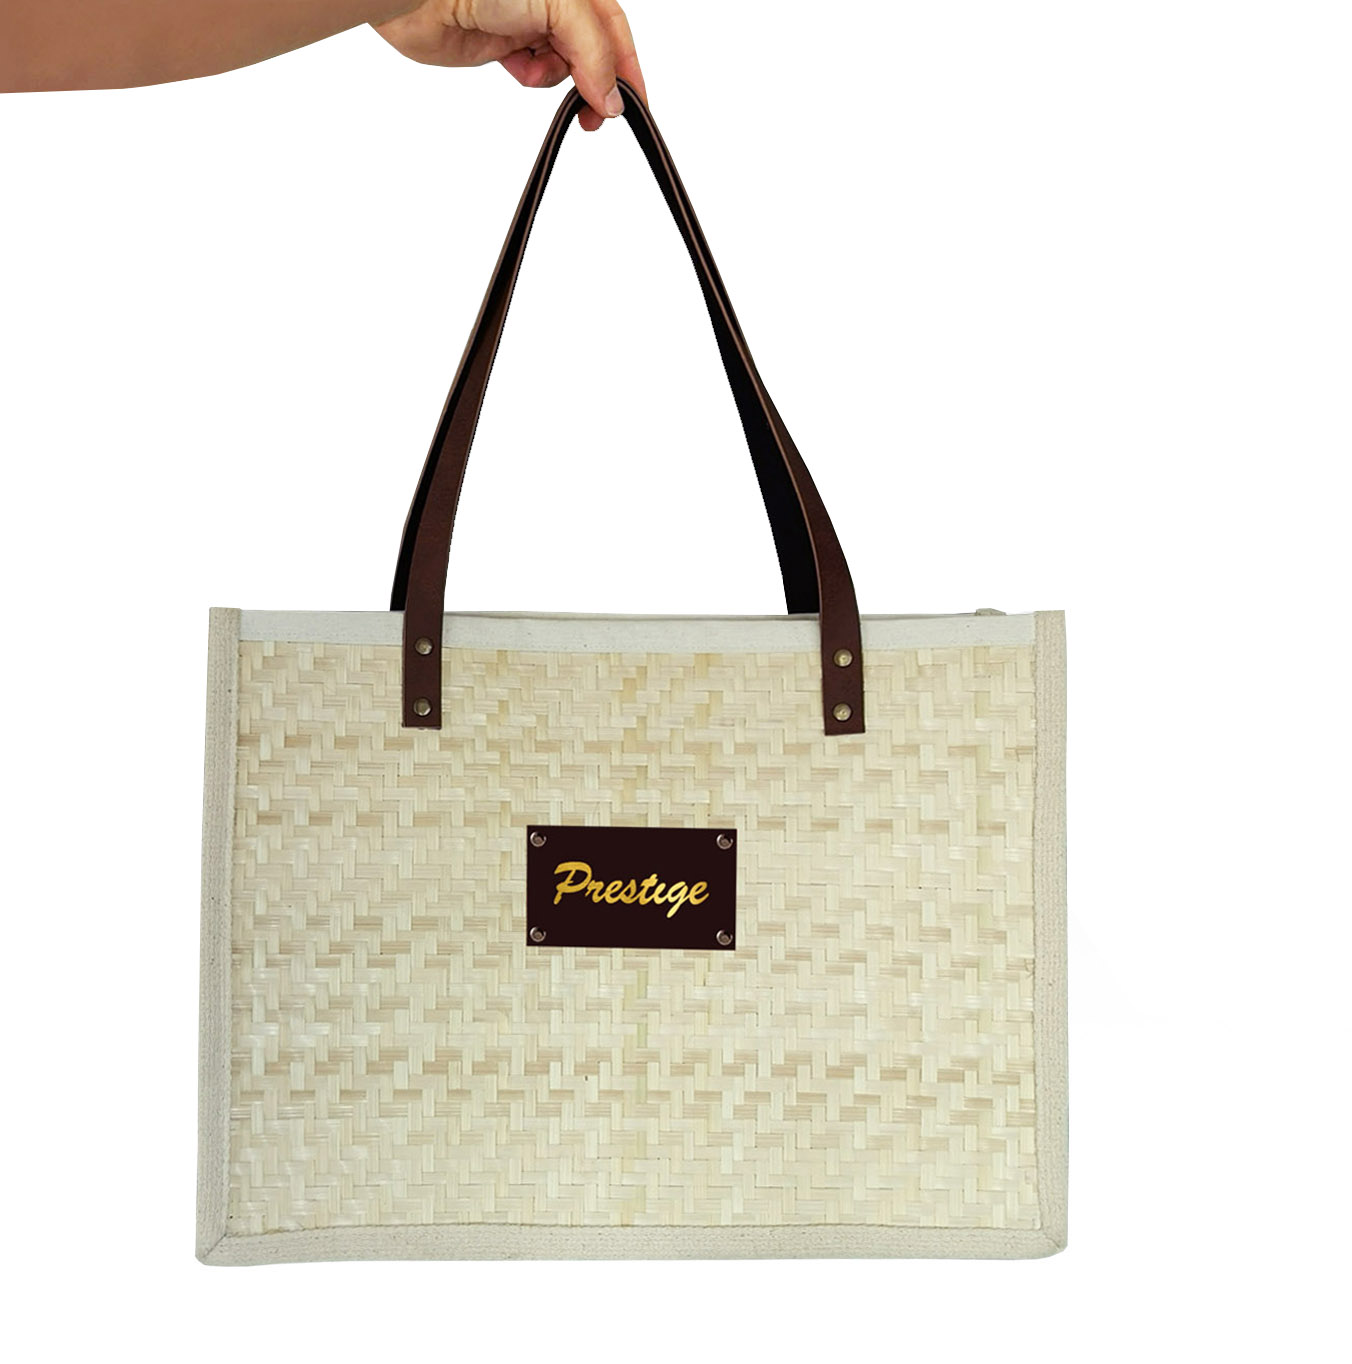 Eco-friendly bamboo bag